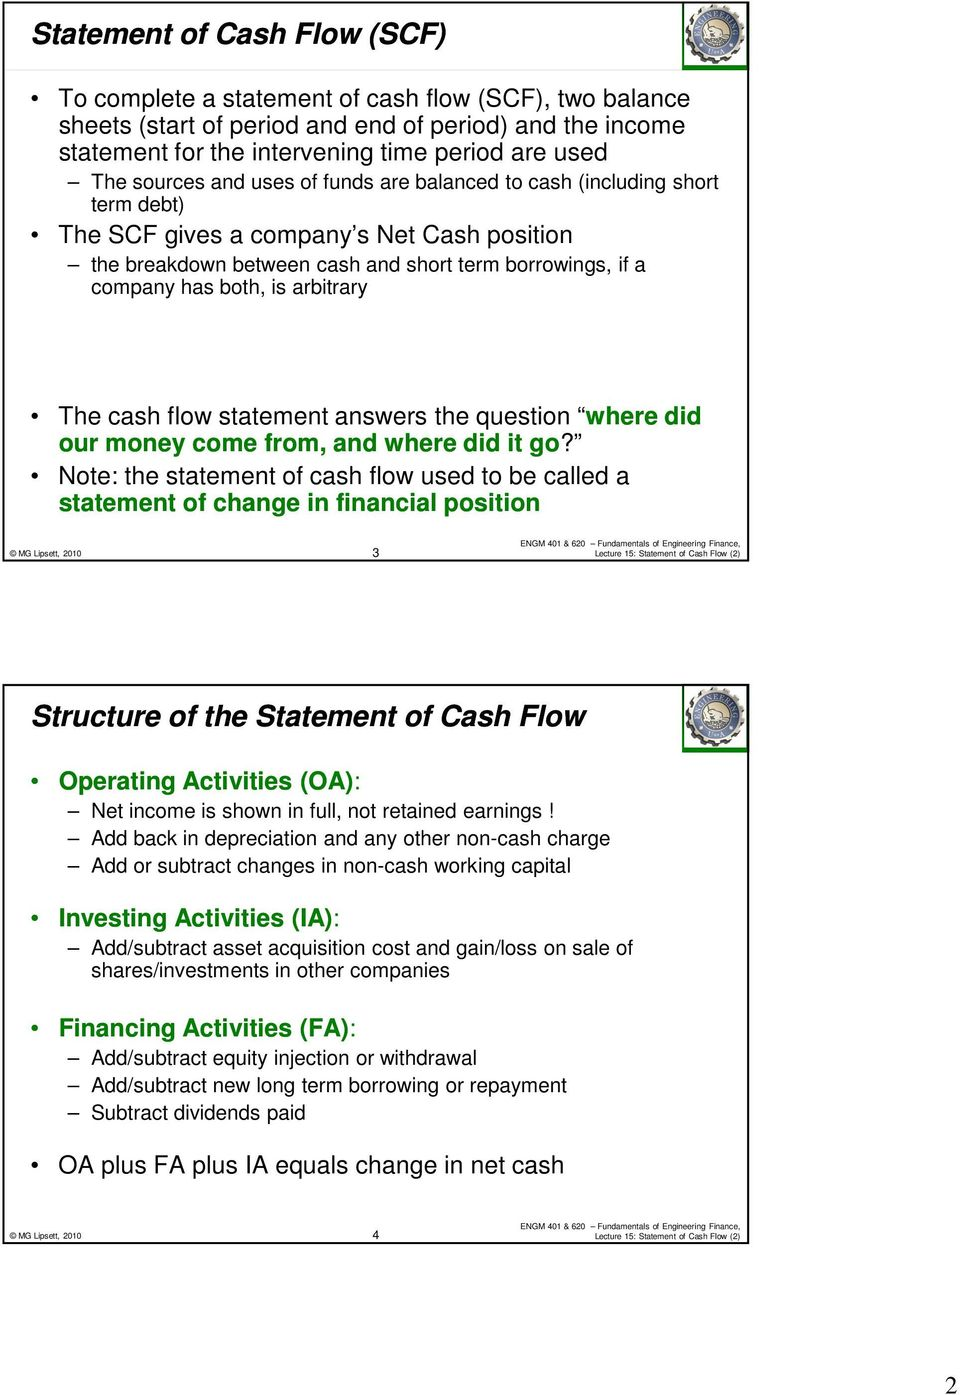 True or False: A statement of cash flow (SCF) documents the